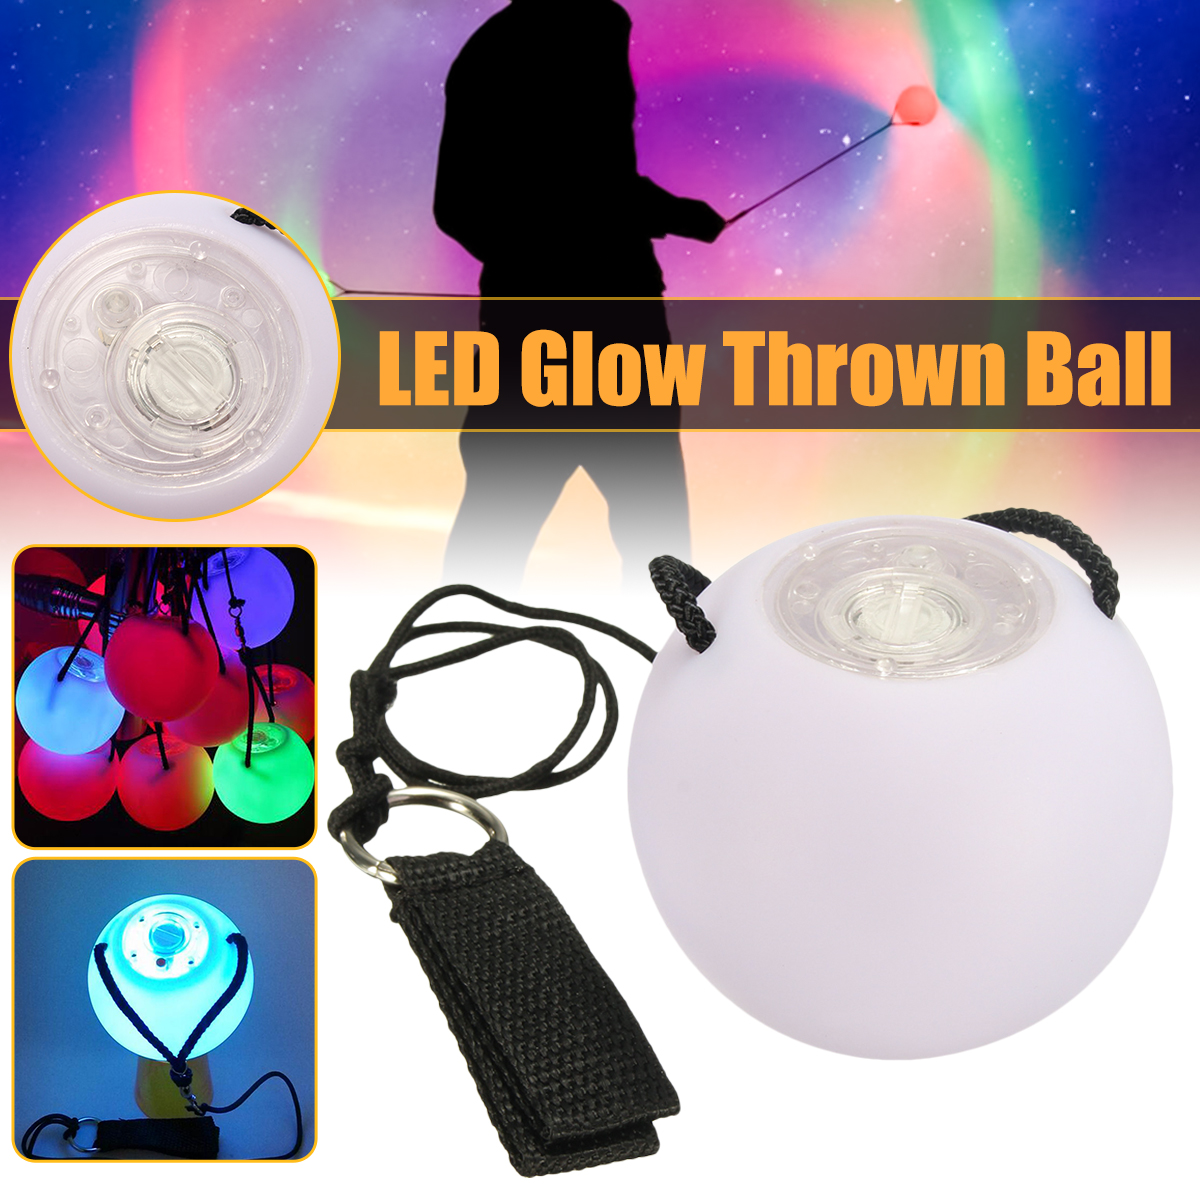 2Pcs LED Balls Belly Dance POI Light Multi-Colored Glowing Thrown Level Hand